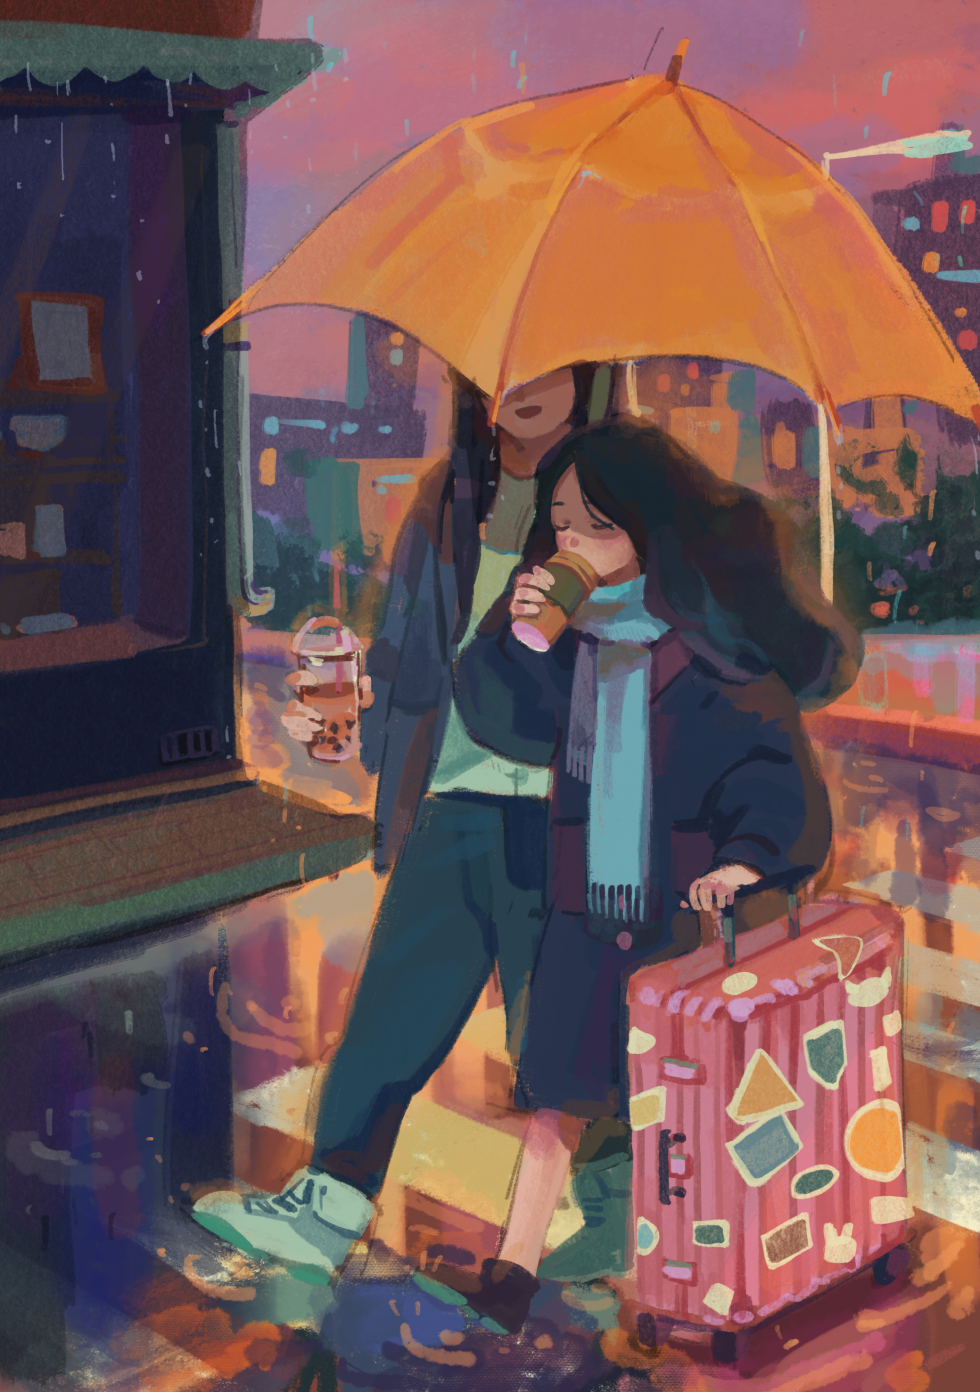 Digital Illustration about a girl traveling to her friend's city